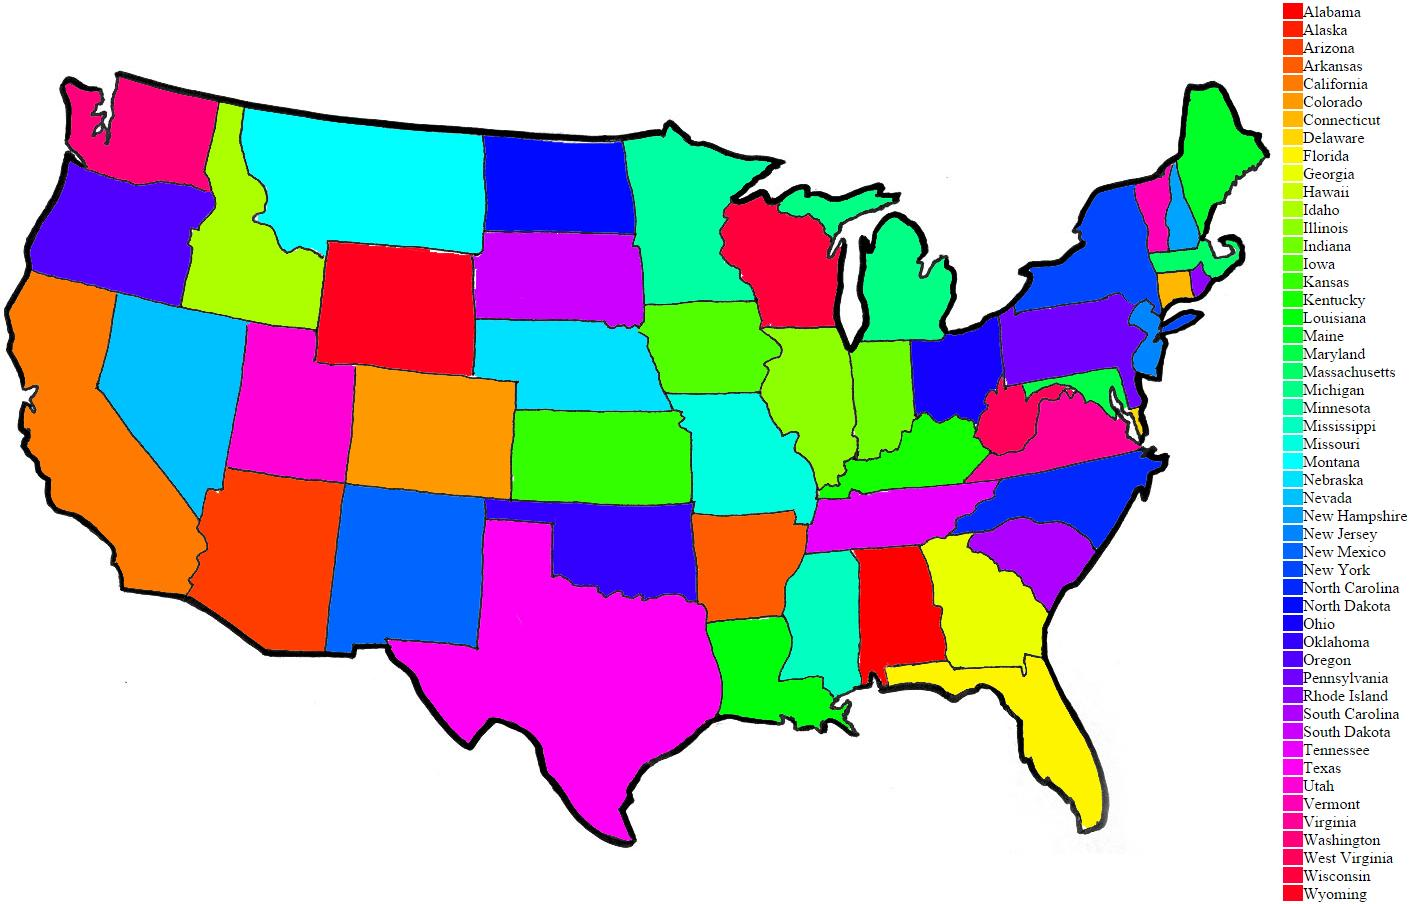 Color Coded Map Of Usa.Color Us Map Color Coded Us Map Northern America Americas